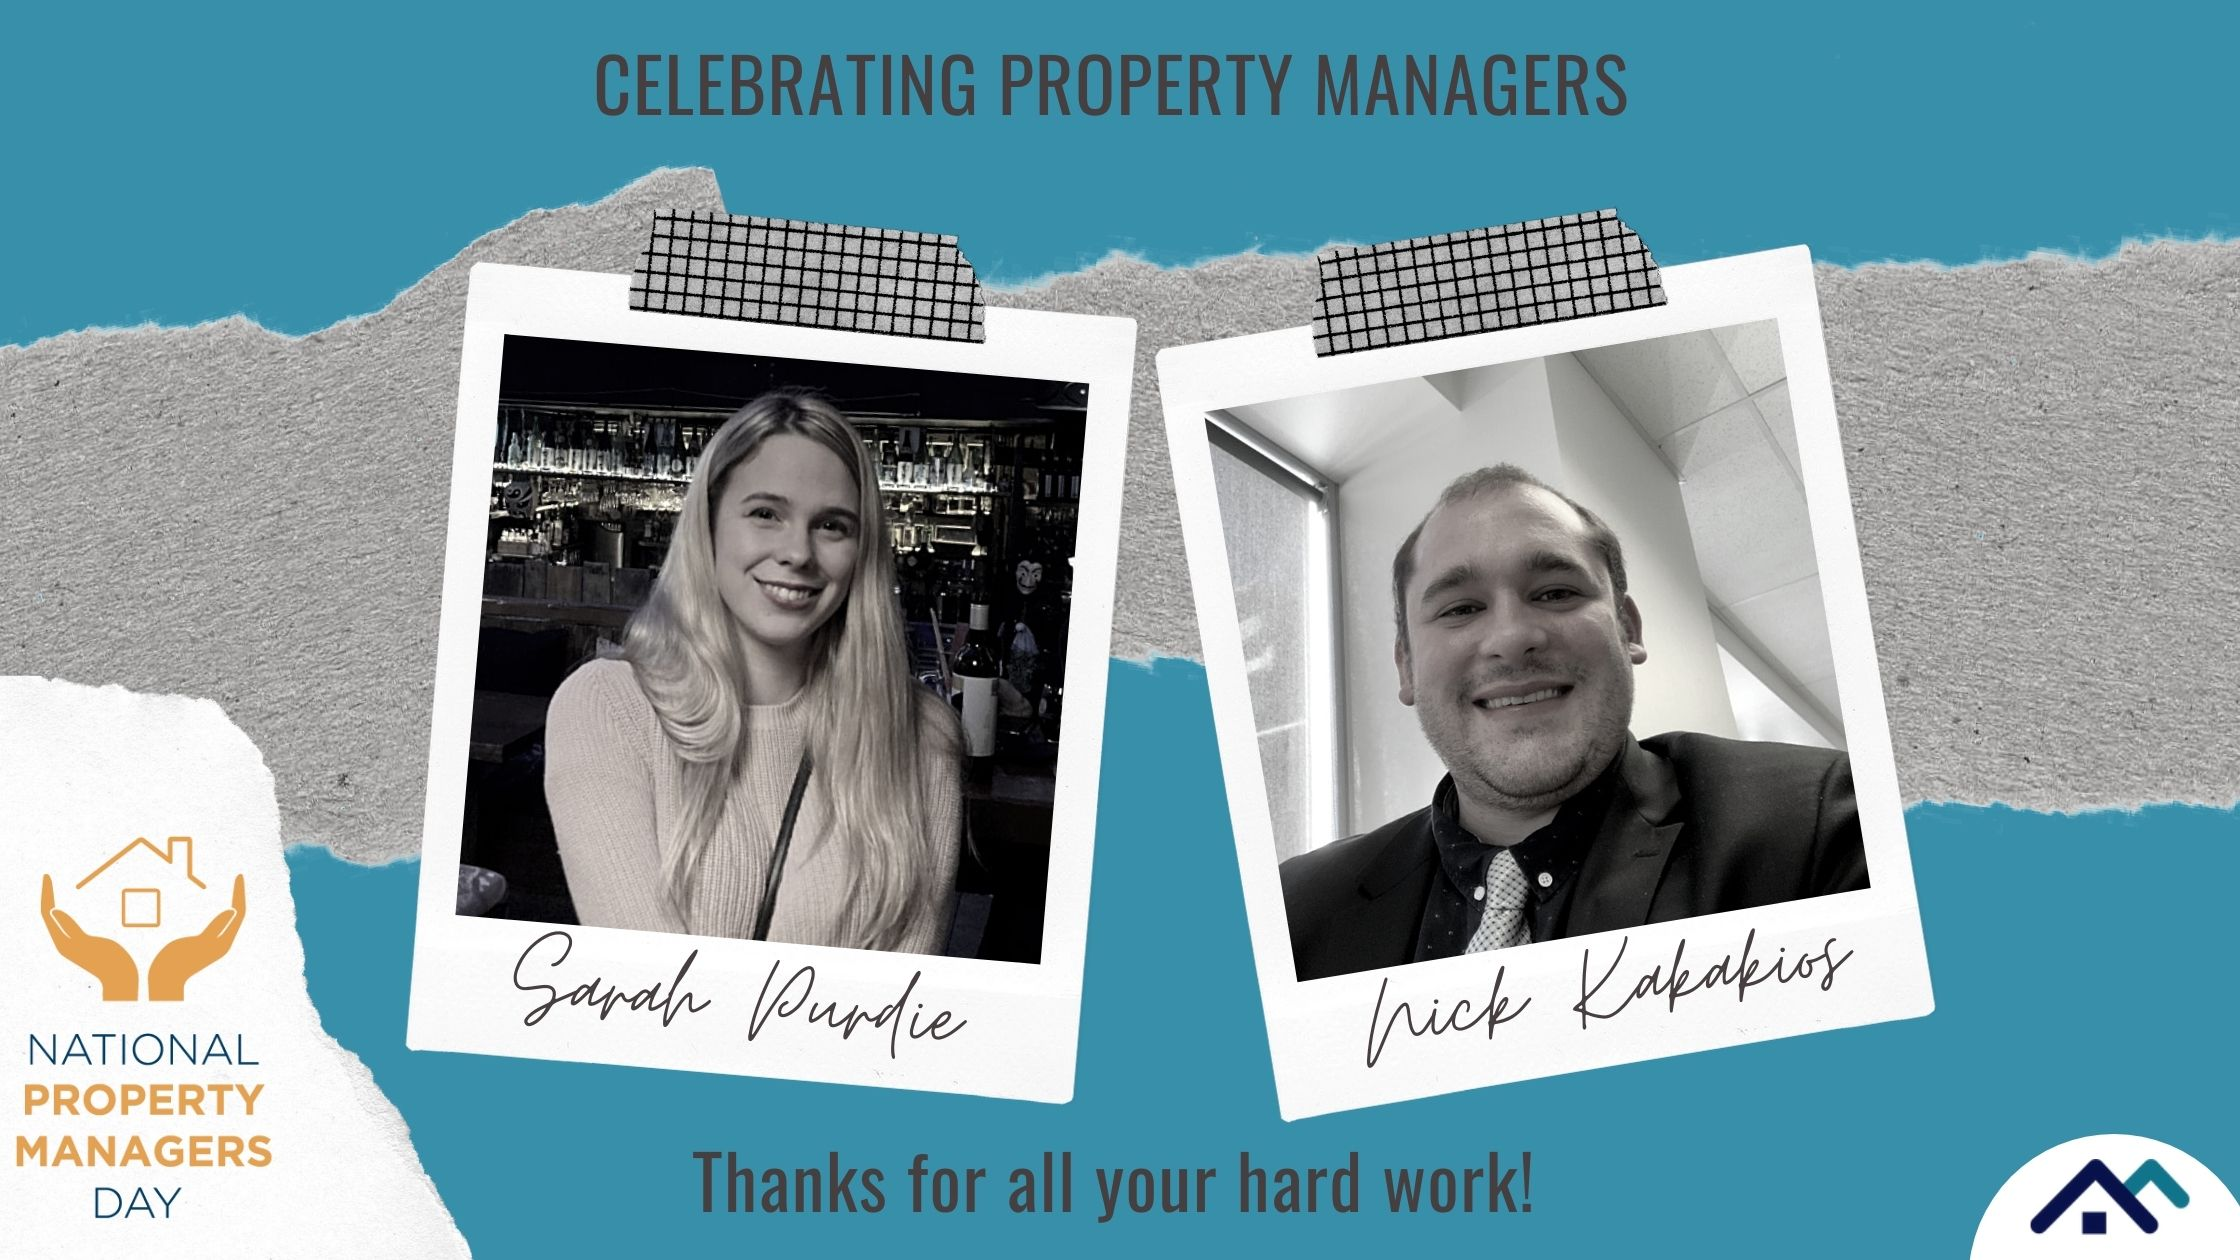 National Property Managers Day 2021